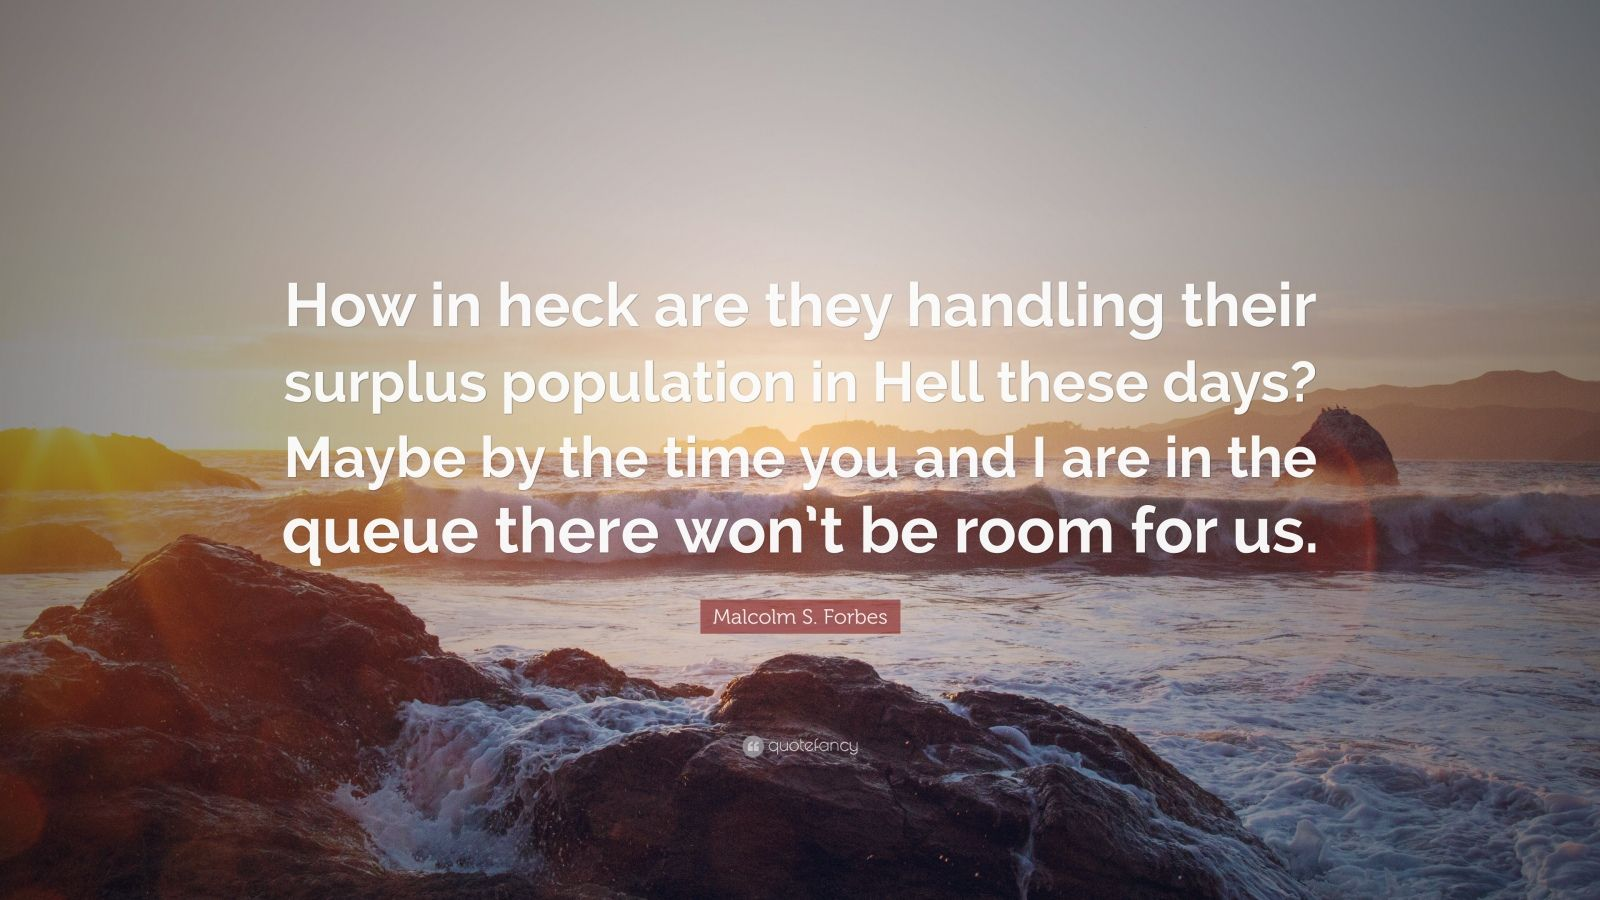 """Malcolm S. Forbes Quote: """"How in heck are they handling their surplus population in Hell these days? Maybe by the time you and I are in the queue there won't be room for us."""""""